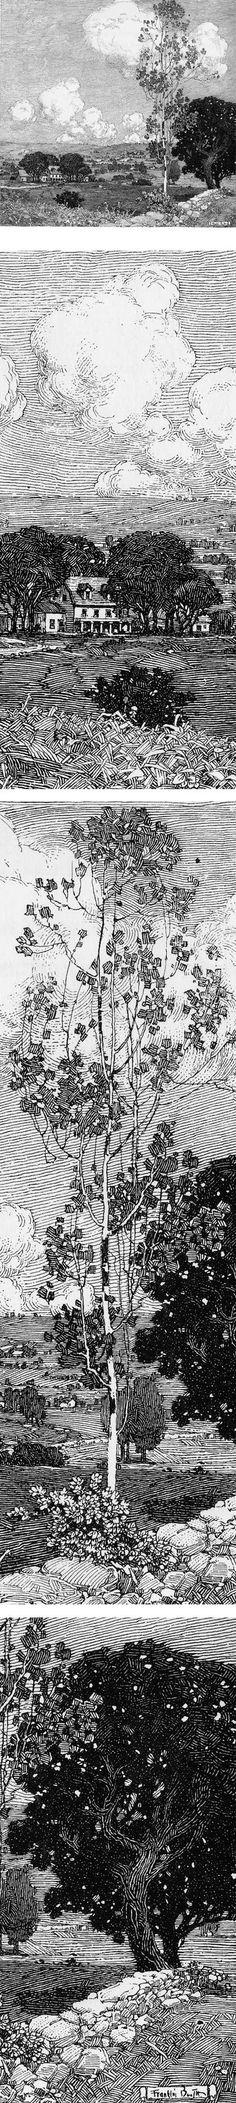 Eye Candy for Today: Franklin Booth pen and ink landscape drawing by allisonn Ink Illustrations, Illustration Art, Photo Ciel, Franklin Booth, Realistic Eye Drawing, Drawing Eyes, Ink Pen Drawings, Landscape Drawings, Pen Art